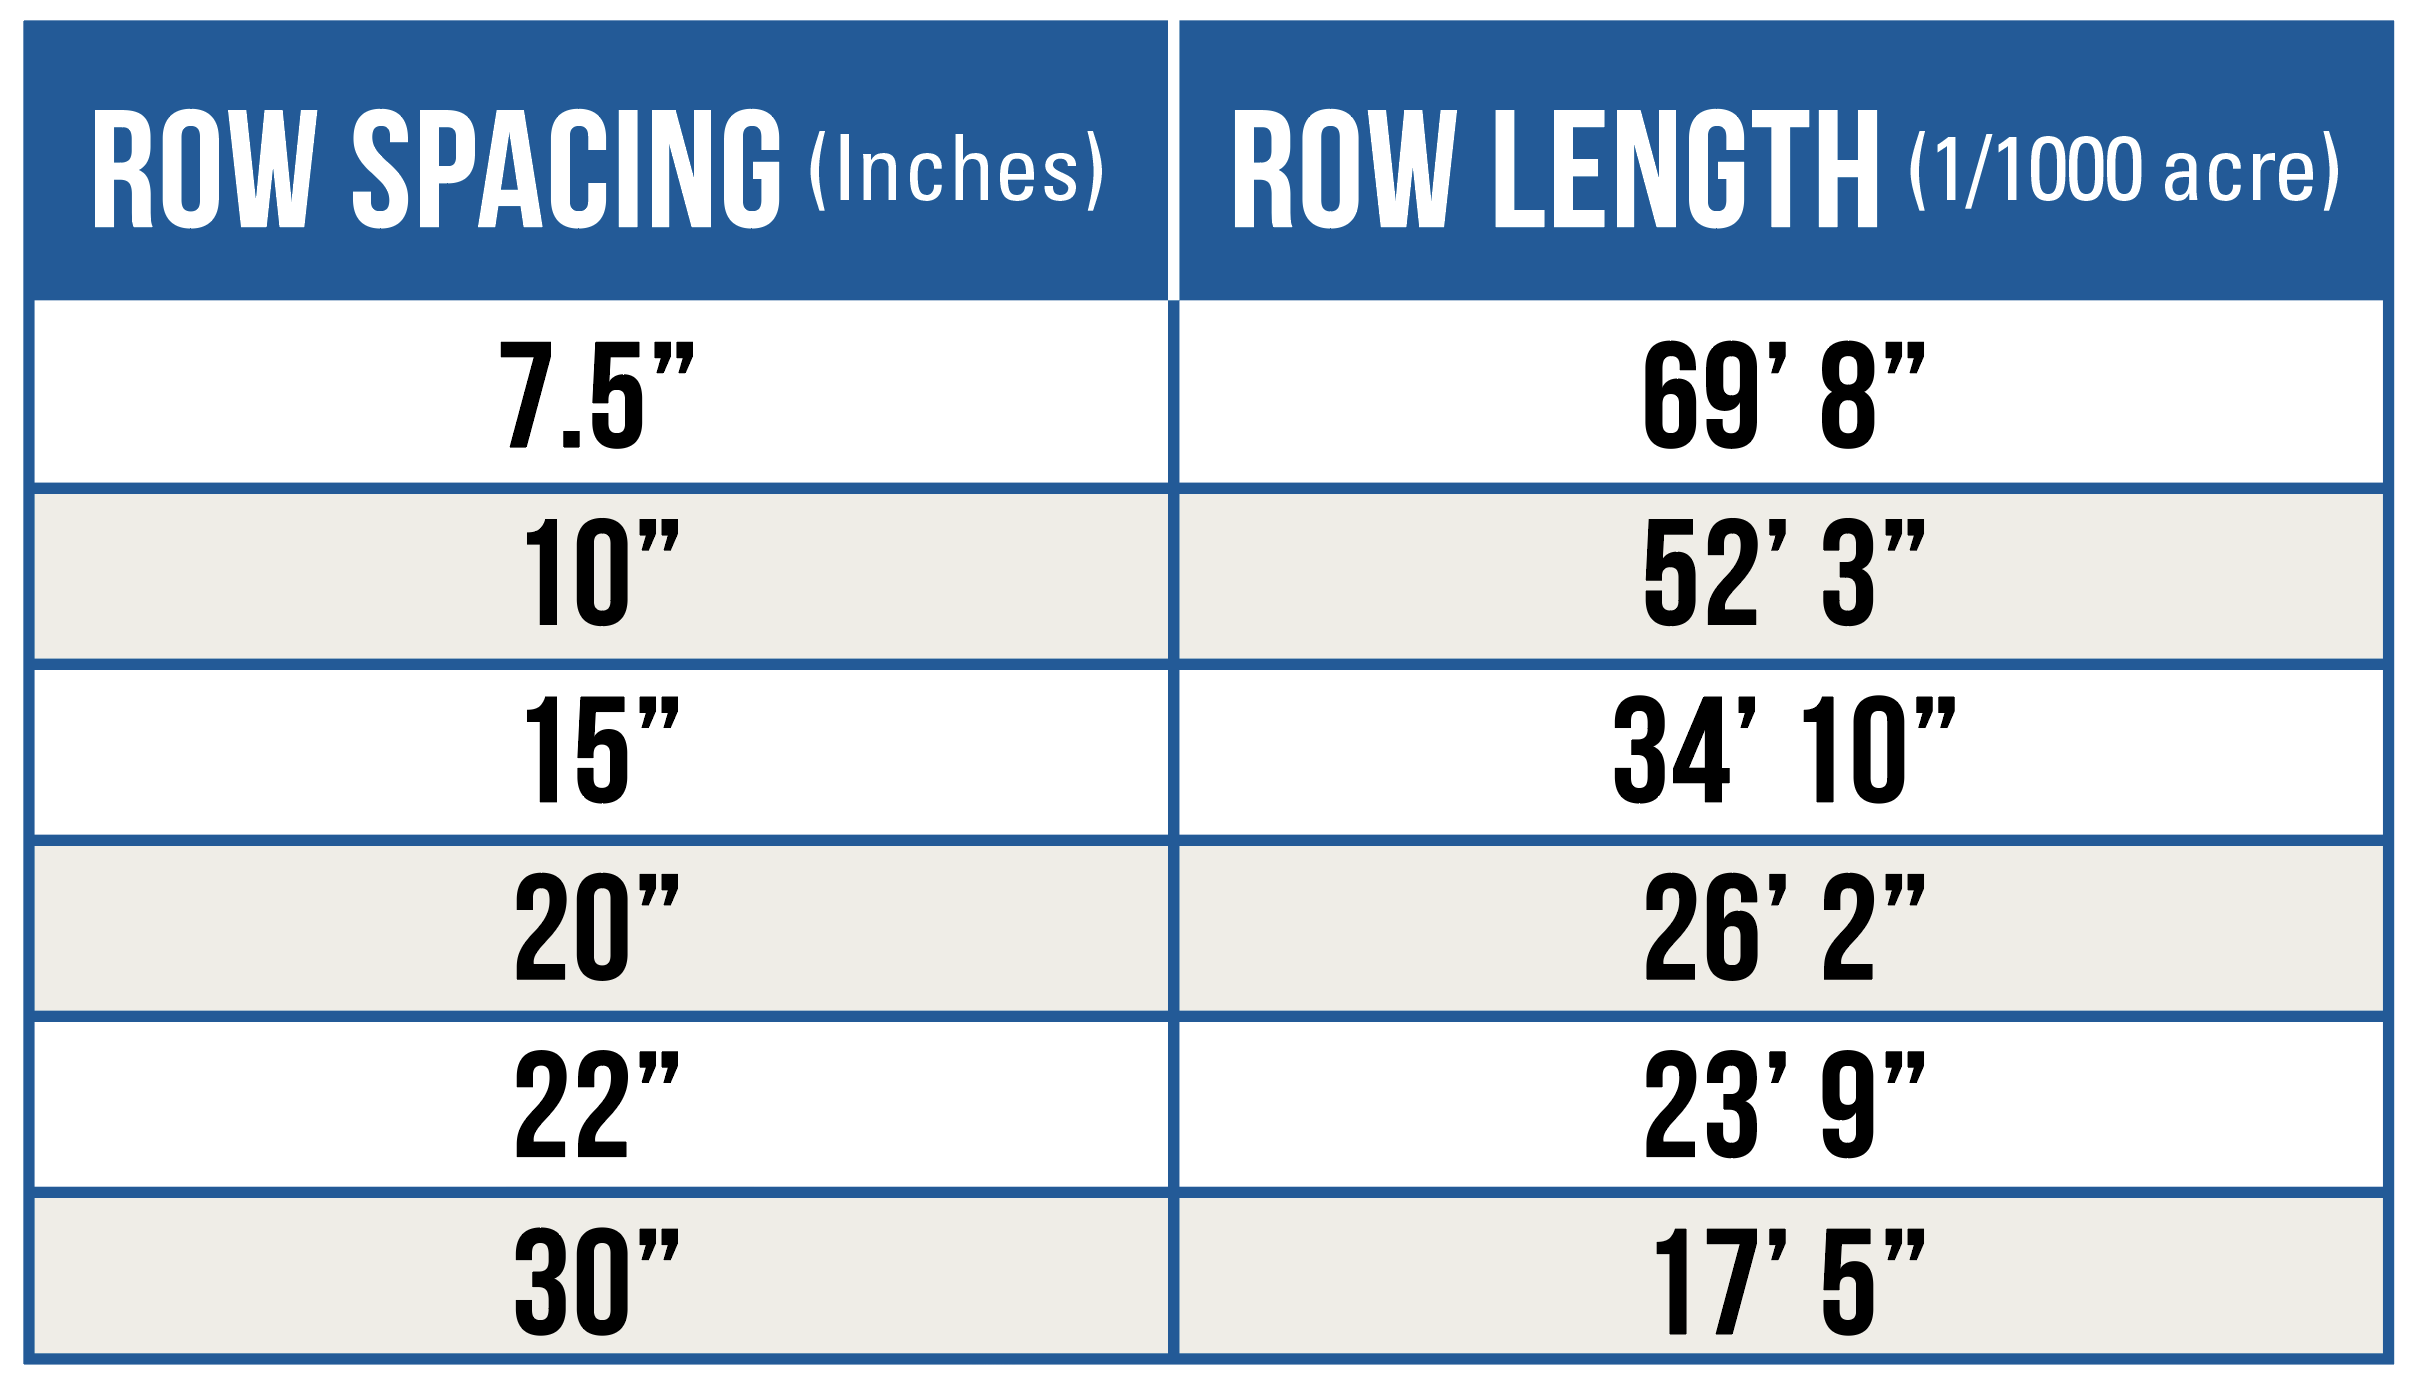 Row Spacing - Row Length Chart Corn Evaluation